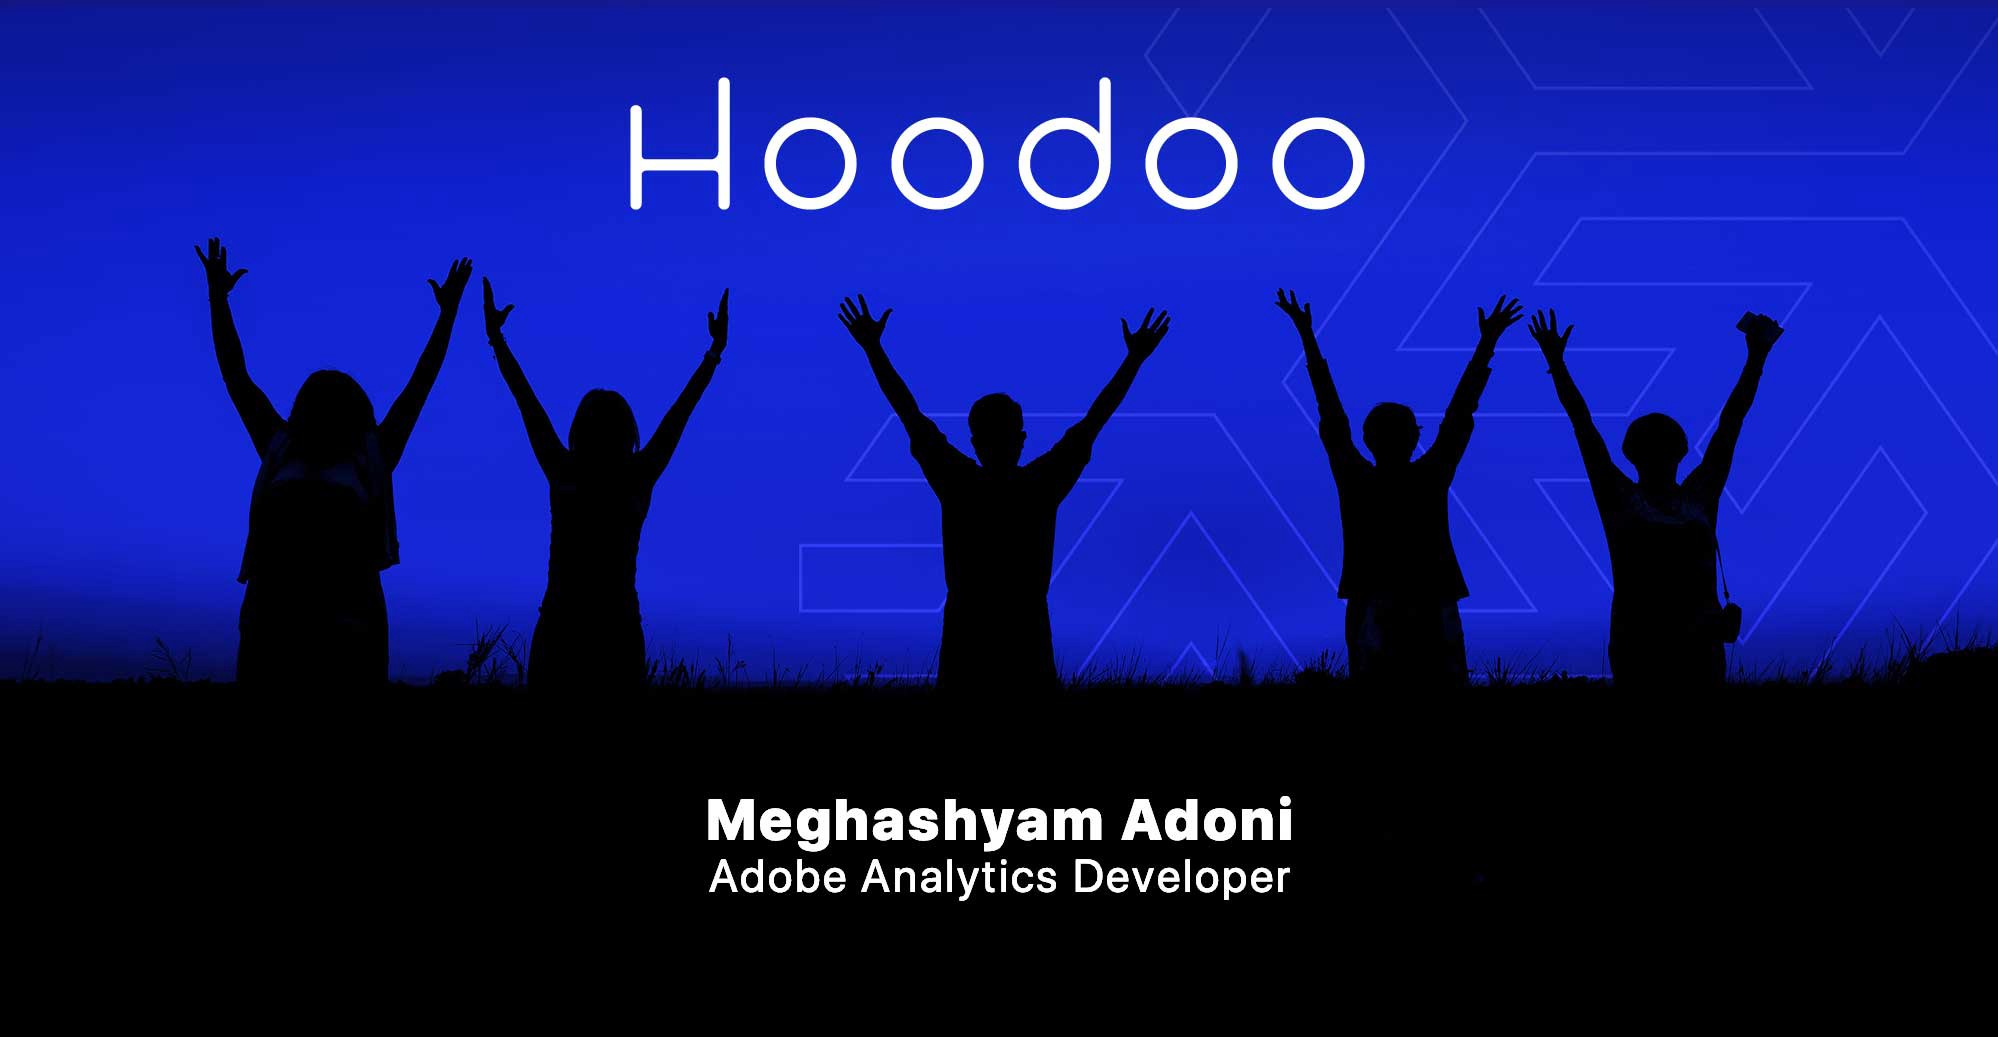 Meghashyam Adoni Completes Adobe Analytics Developer Certification